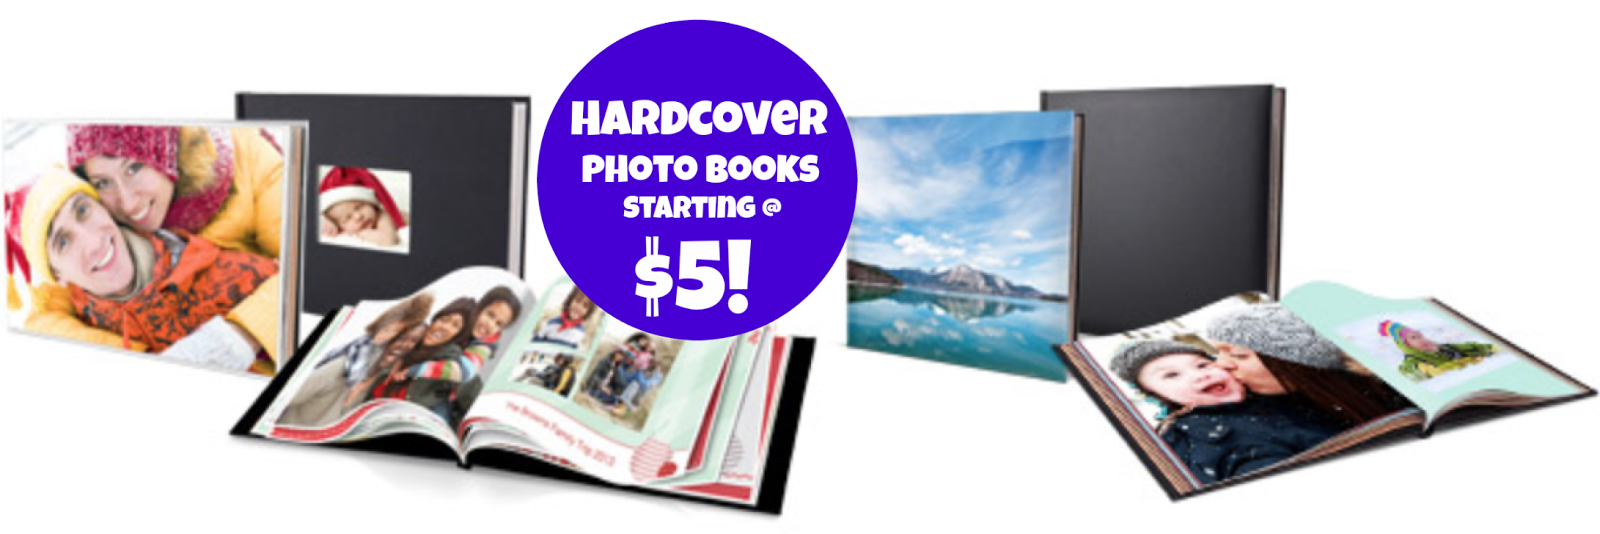 http://www.thebinderladies.com/2014/12/walgreens-com-75-off-photo-books-85-x.html